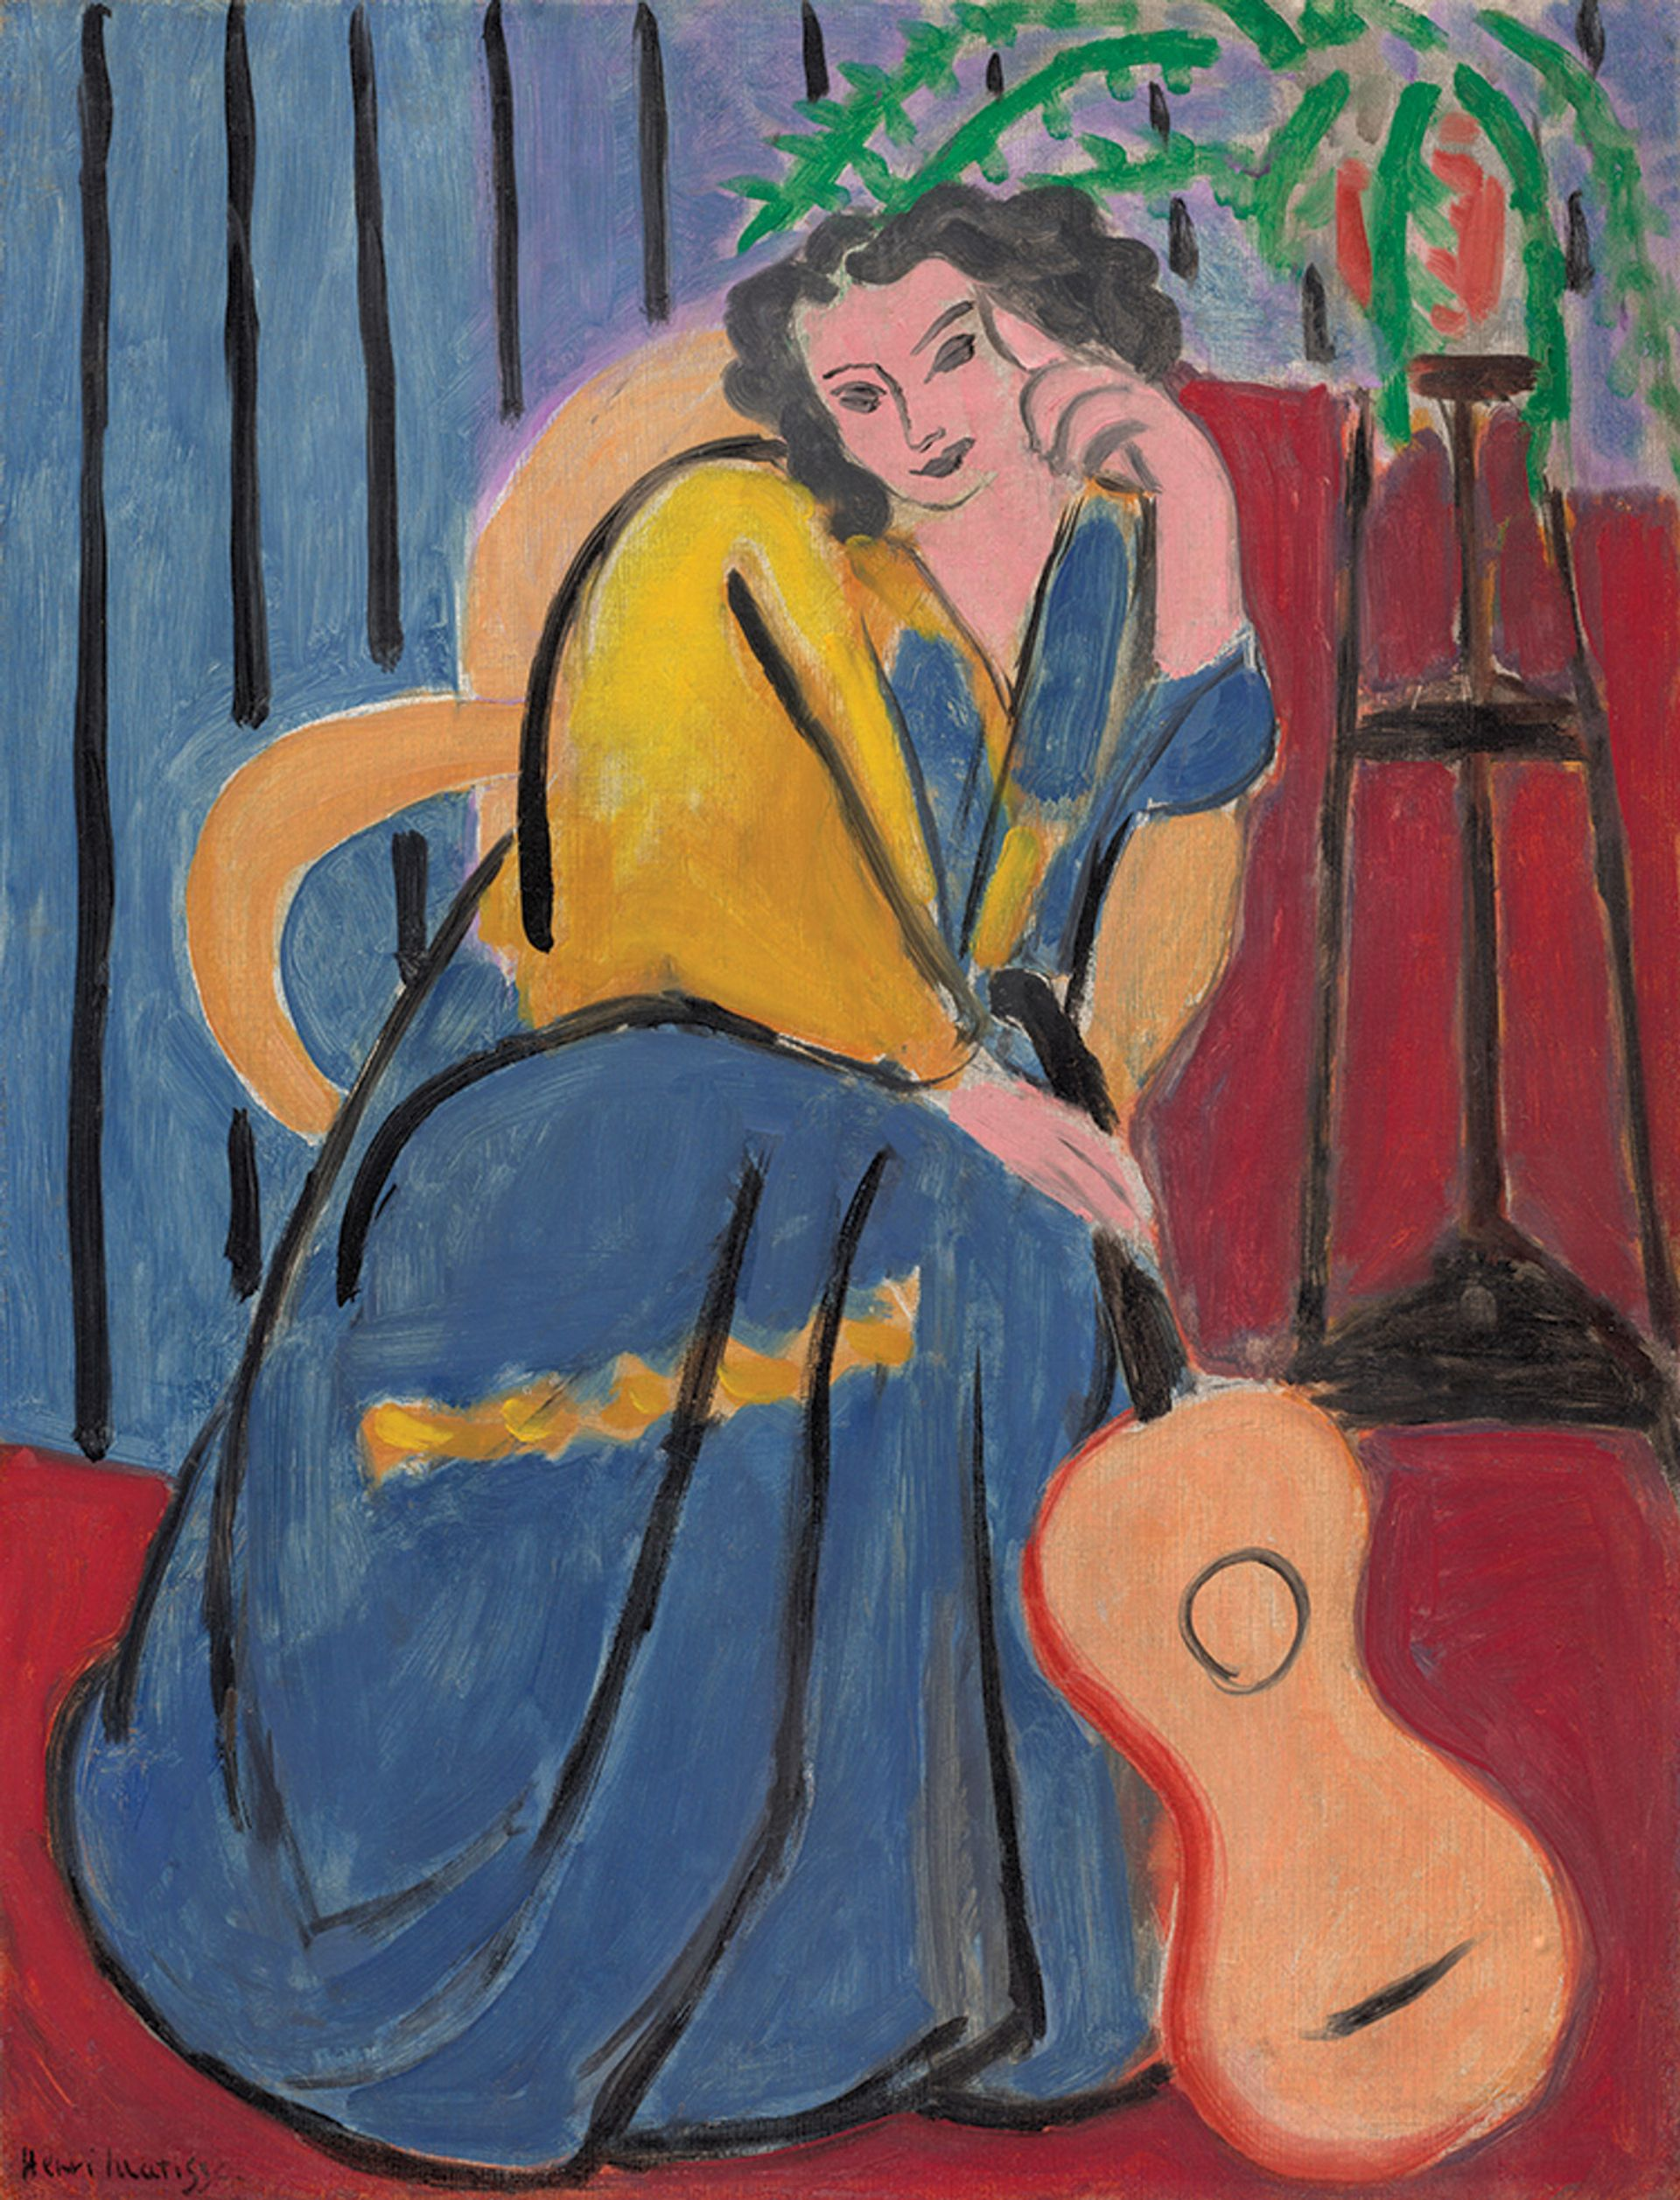 Henri Matisse's Girl in Yellow and Blue with Guitar (1939) was seized from the dealer Paul Rosenberg Art Institute of Chicago/Art Resource, NY; Succession H. Matisse/ARS, NY